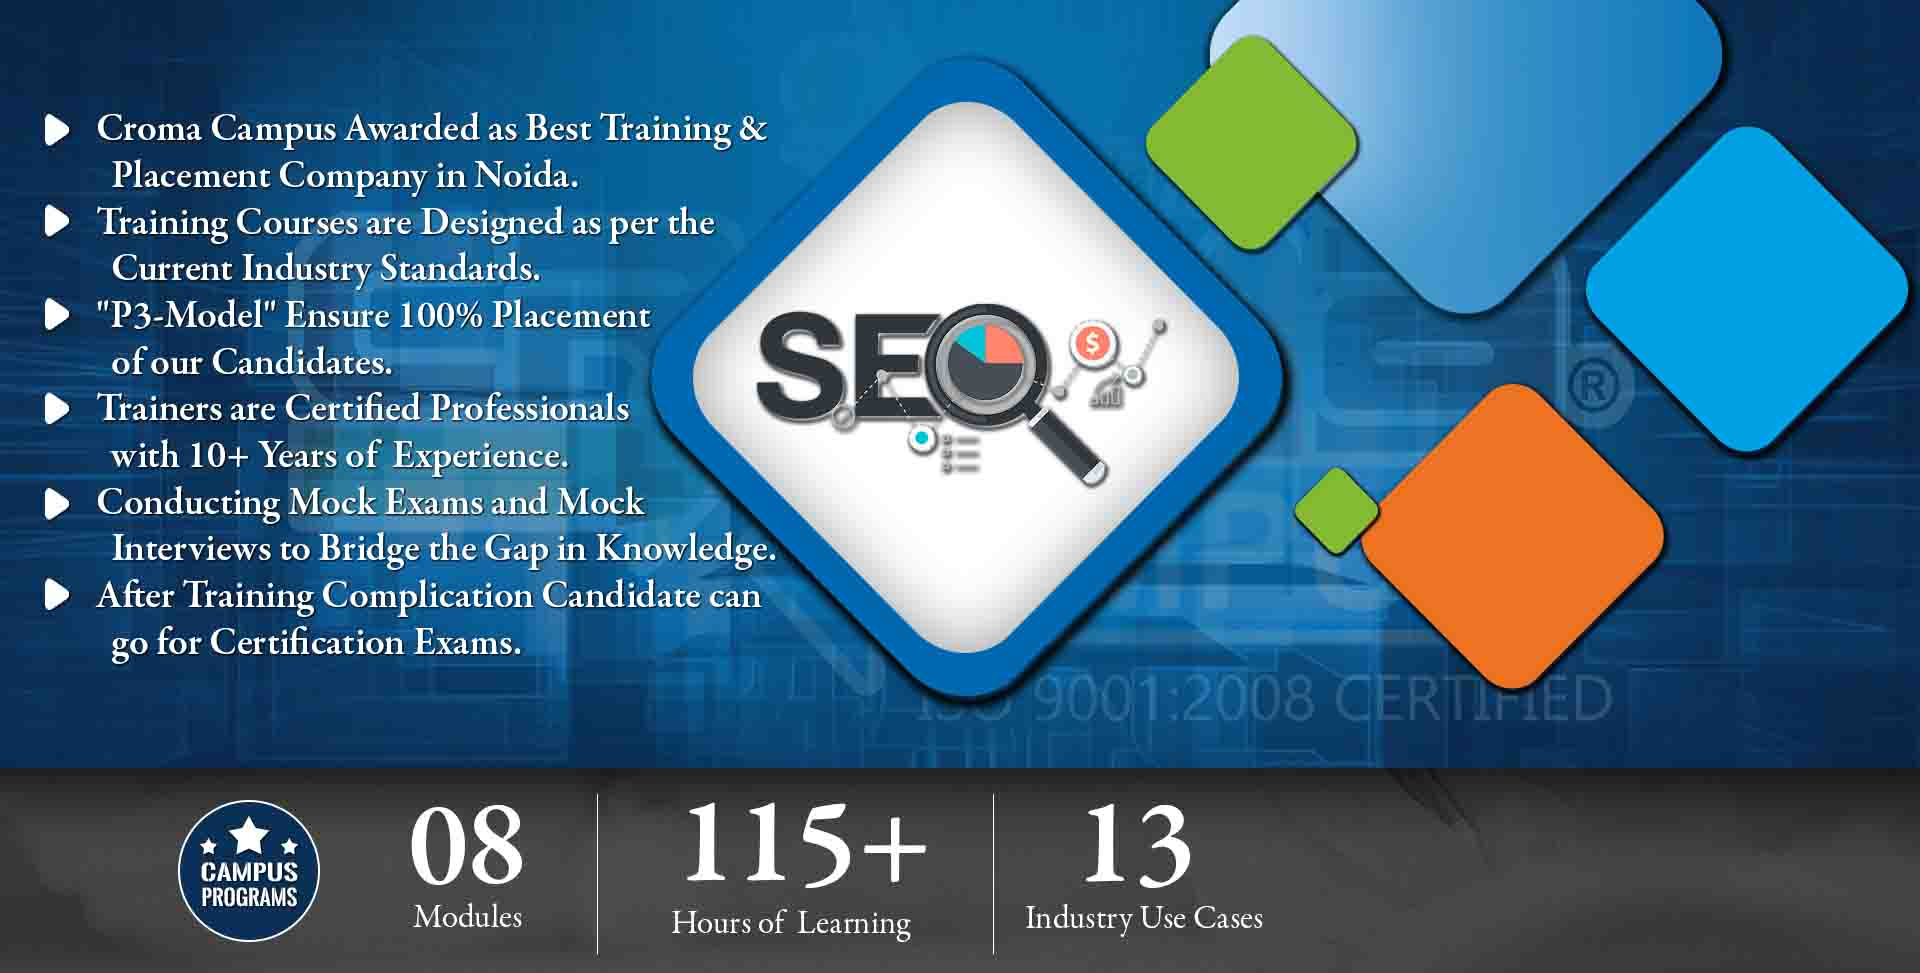 SEO Training in Noida- Croma Campus